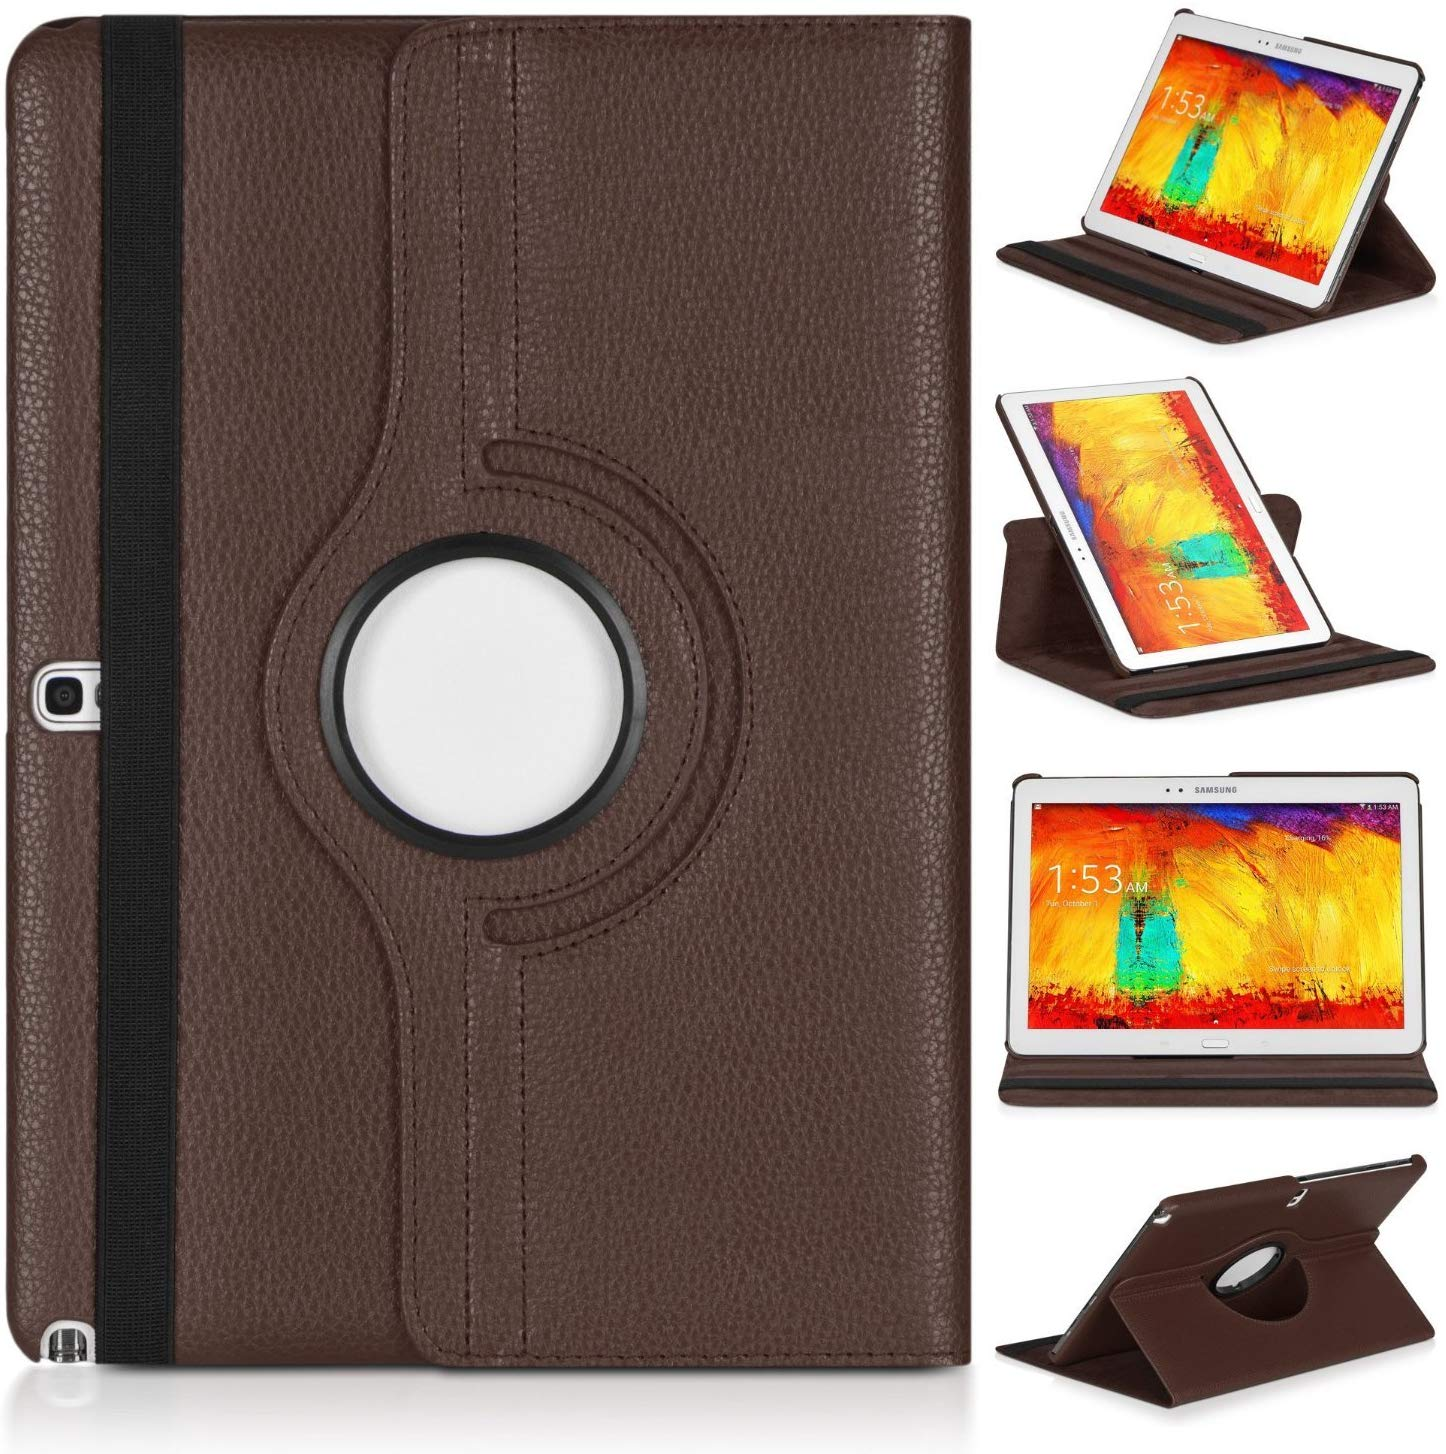 Tablet Shell For Samsung Galaxy Tab Pro 10.1 T520 T525 T521 Note 2014 P600 P601 P605 Case 360 Rotating Bracket Leather Cover